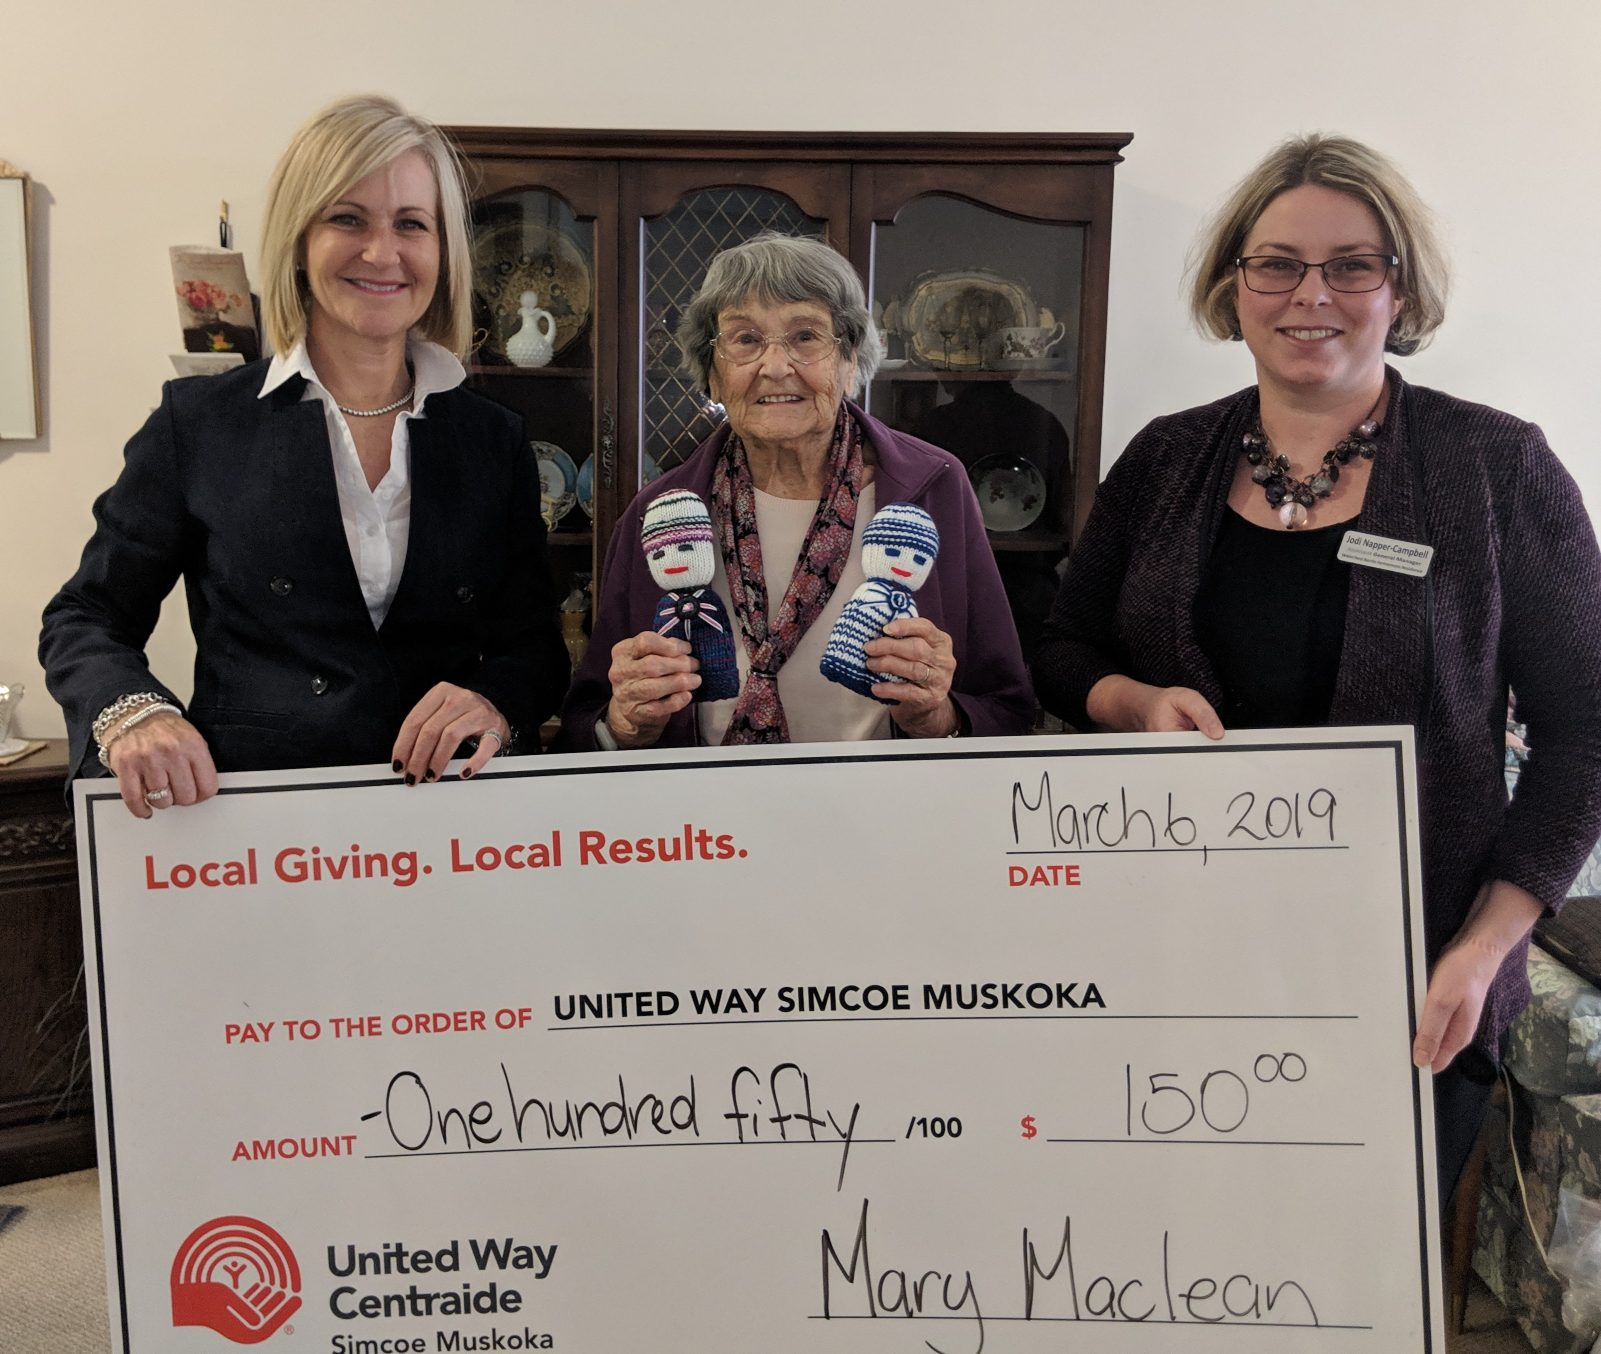 RM Lori-Ann presenting Mary with a cheque for $150